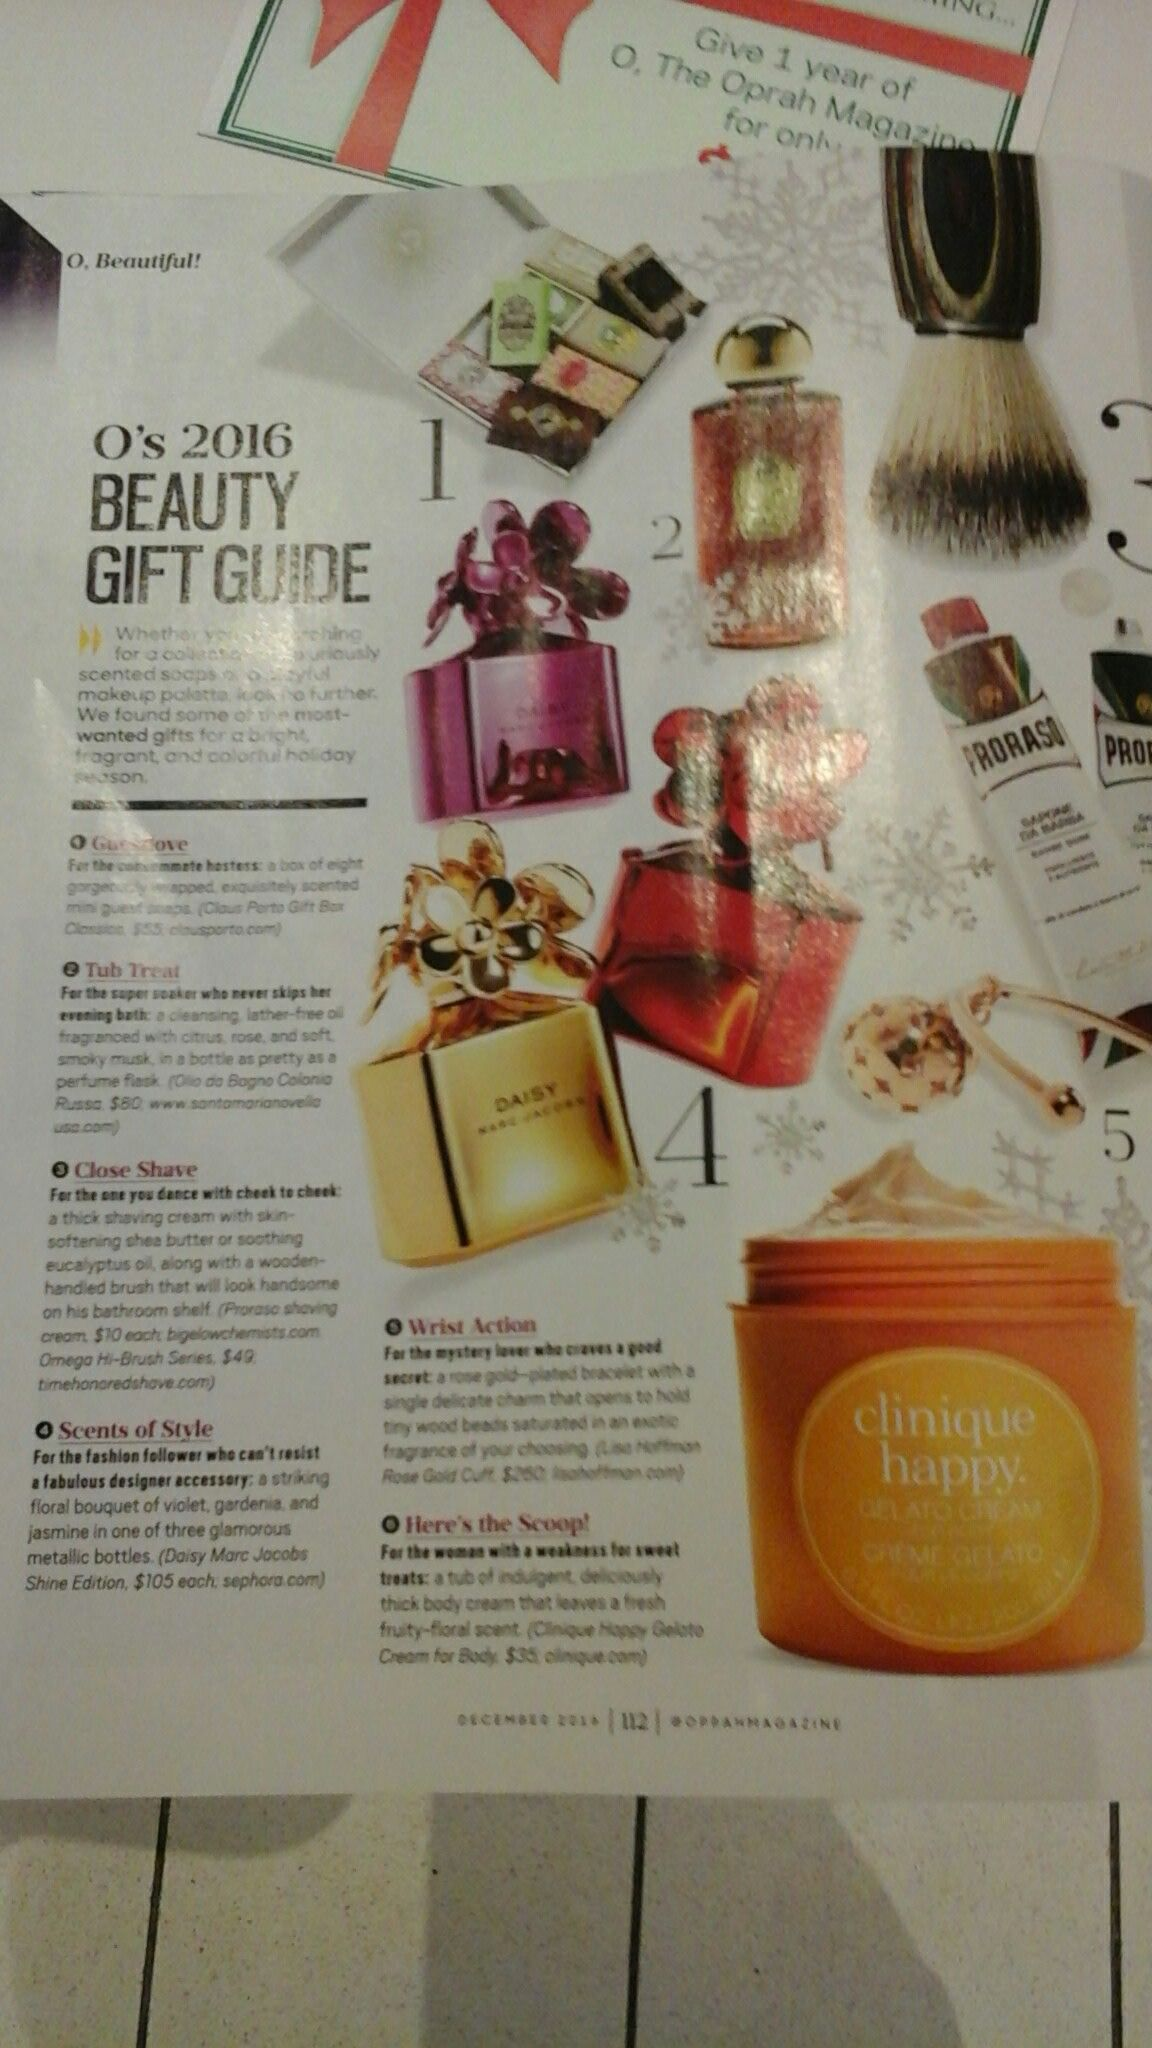 Clinique Happy Gelato Body Cream In The Holiday Issue Of Oprahs Gieve Eucalyptus Lotion Favorite Things